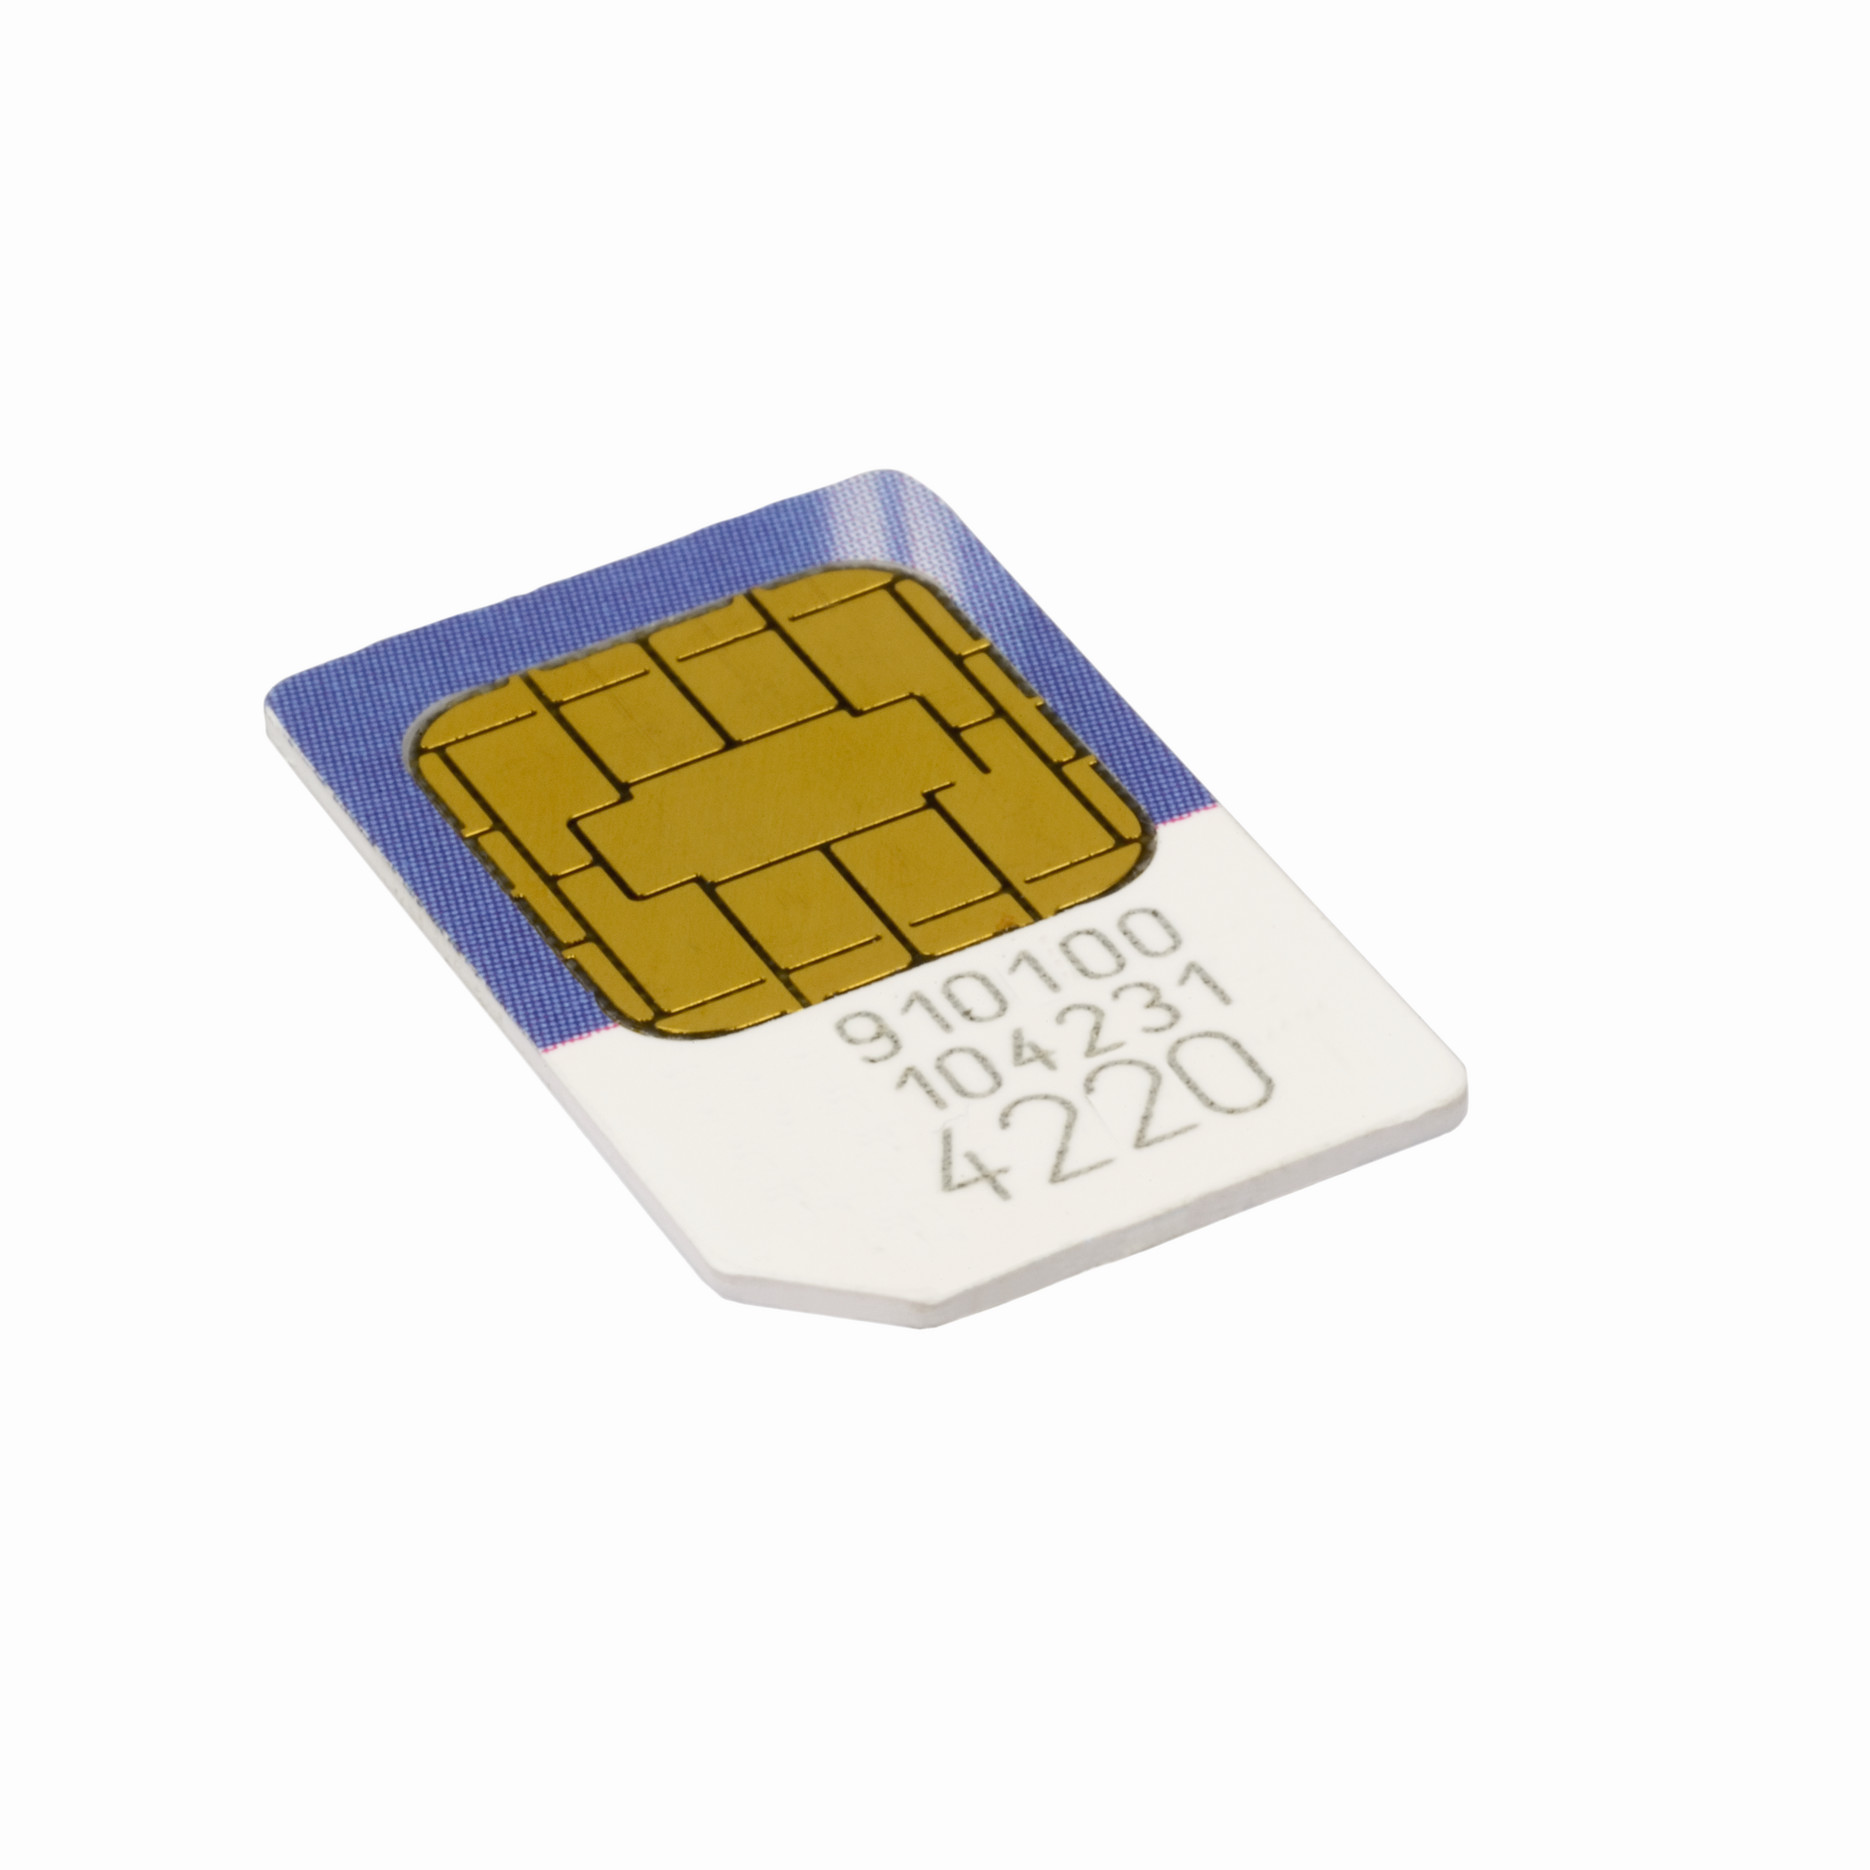 Iphone 4s Sim Karte.What Does Sim Not Provisioned Mean On An Iphone Chron Com